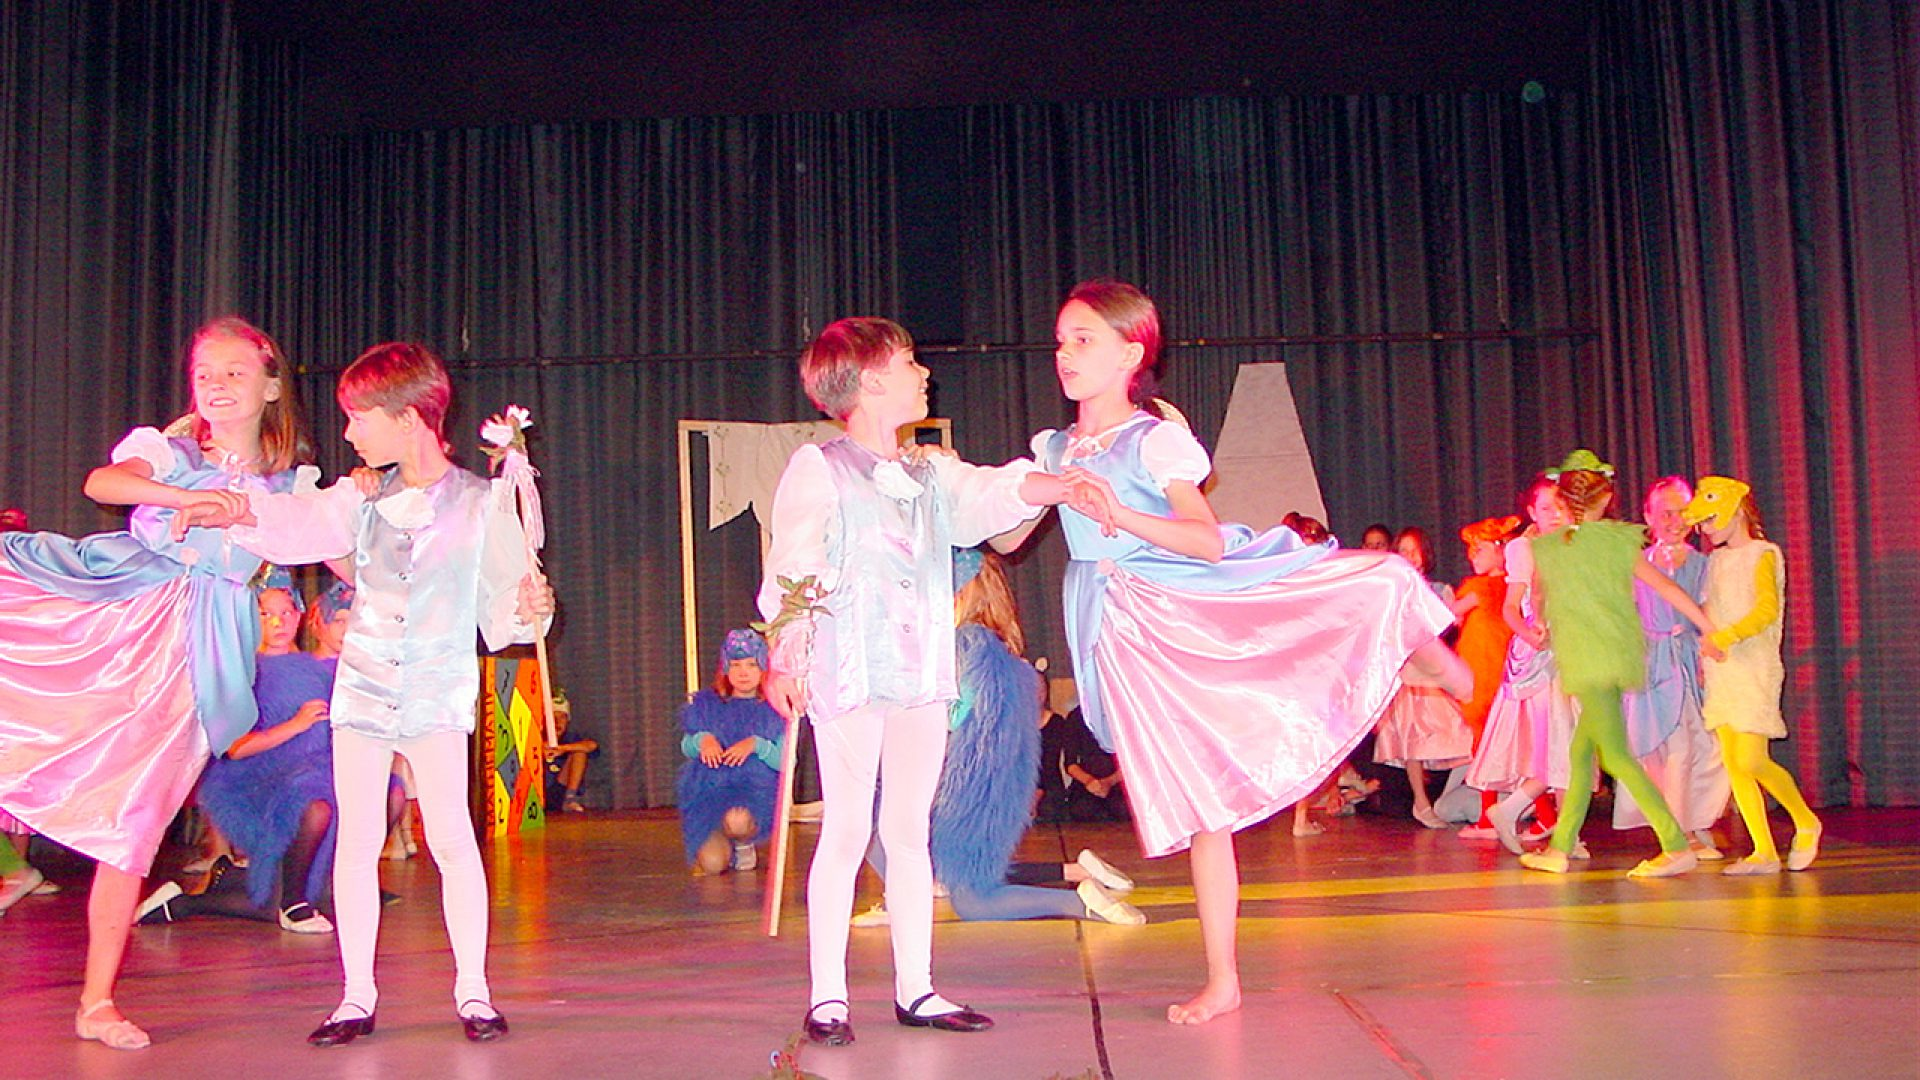 Vhs-Ballettschule Martha Jacob